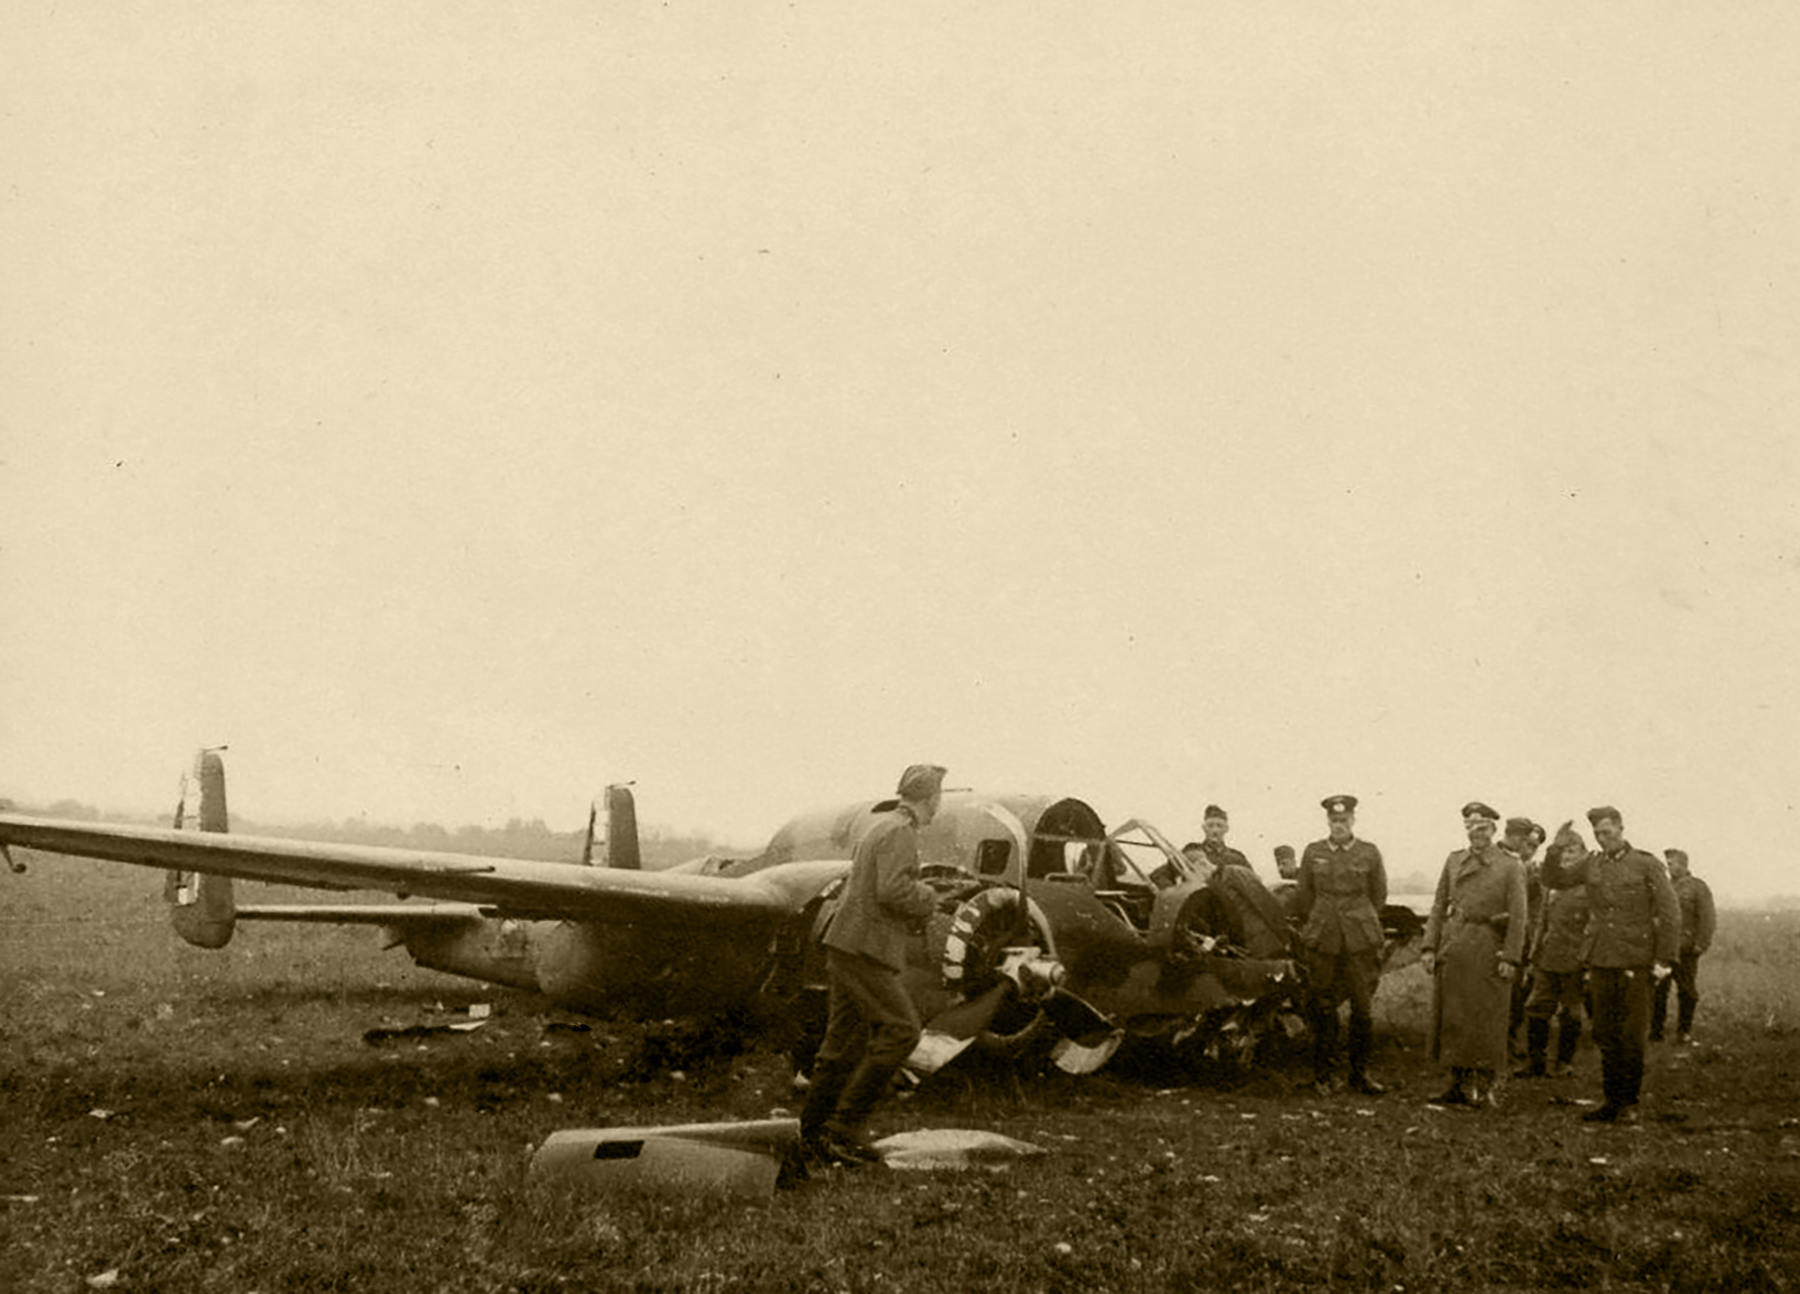 French Airforce Breguet Bre 691 force landed during the air war over France May 1940 ebay 01